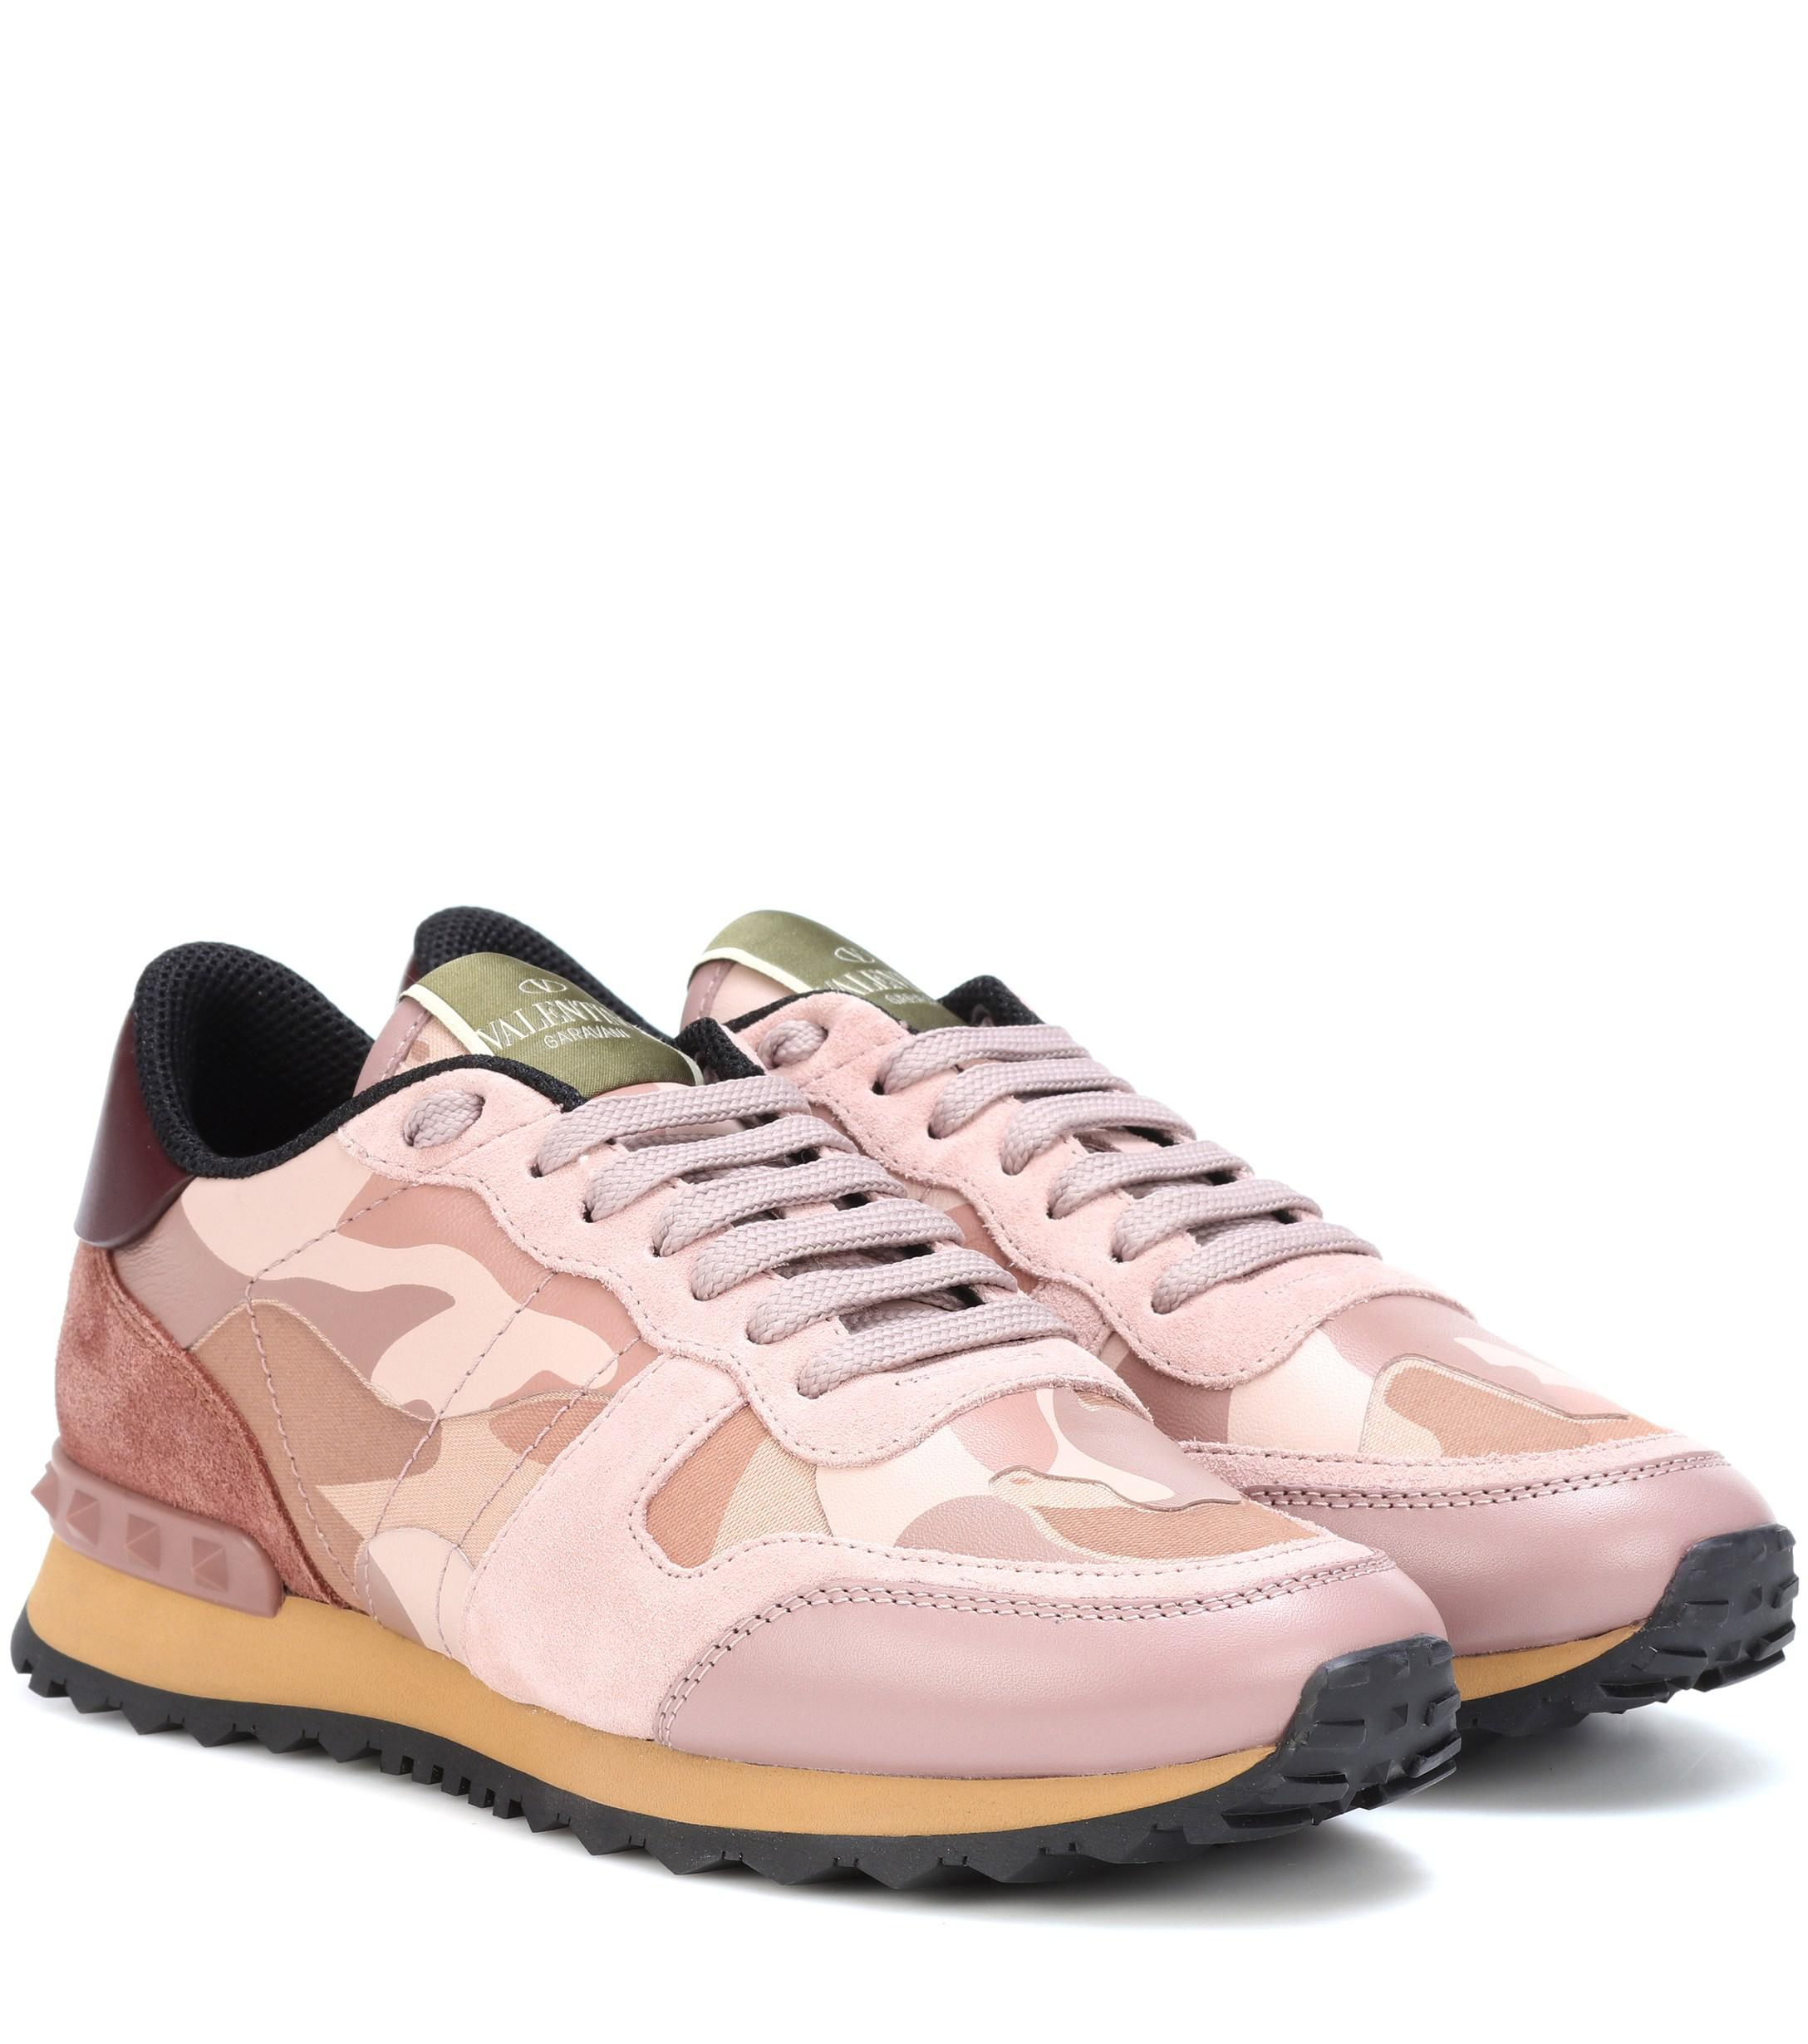 9016222620b4 Lyst - Valentino Rockrunner Camouflage Sneakers in Pink